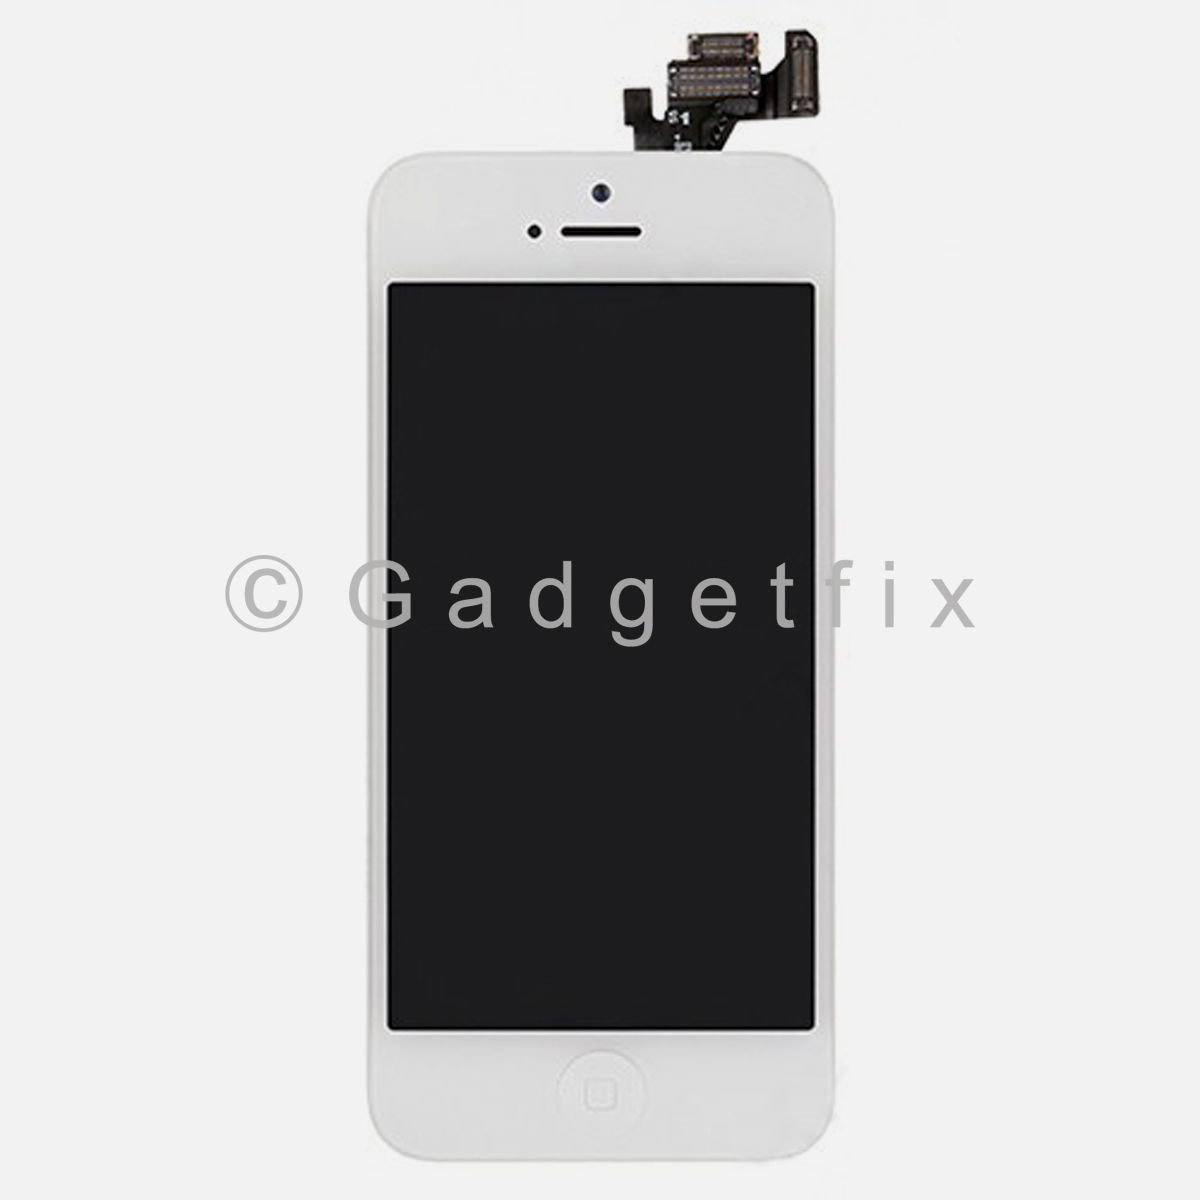 White Touch Screen Digitizer LCD Display Button + Camera + Button for iPhone 5